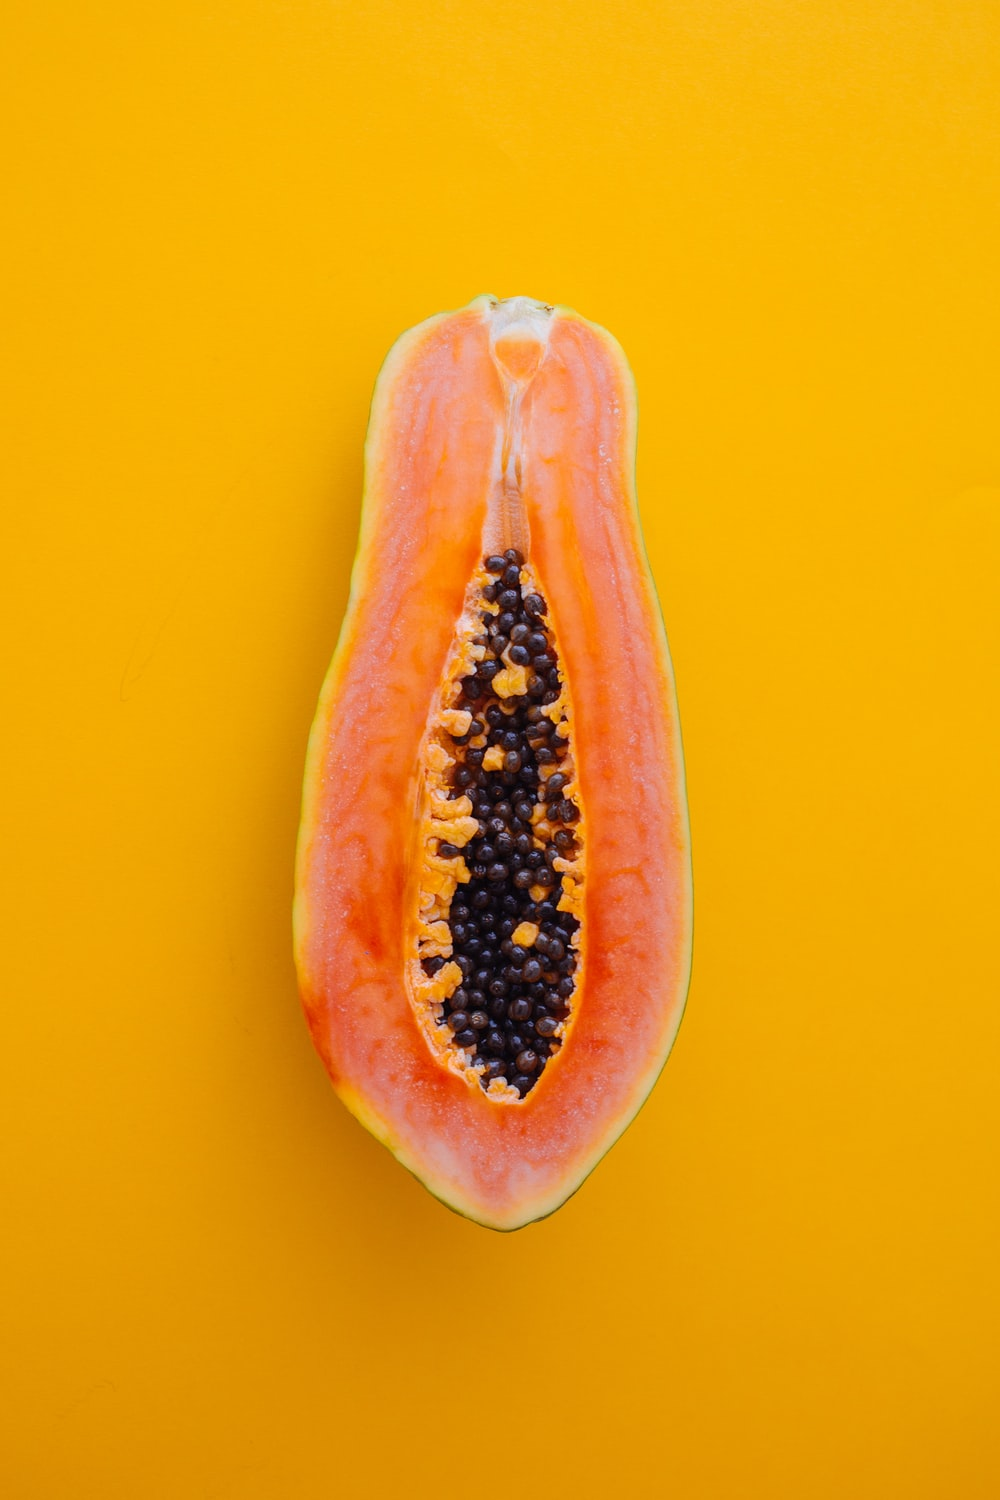 orange sliced papaya